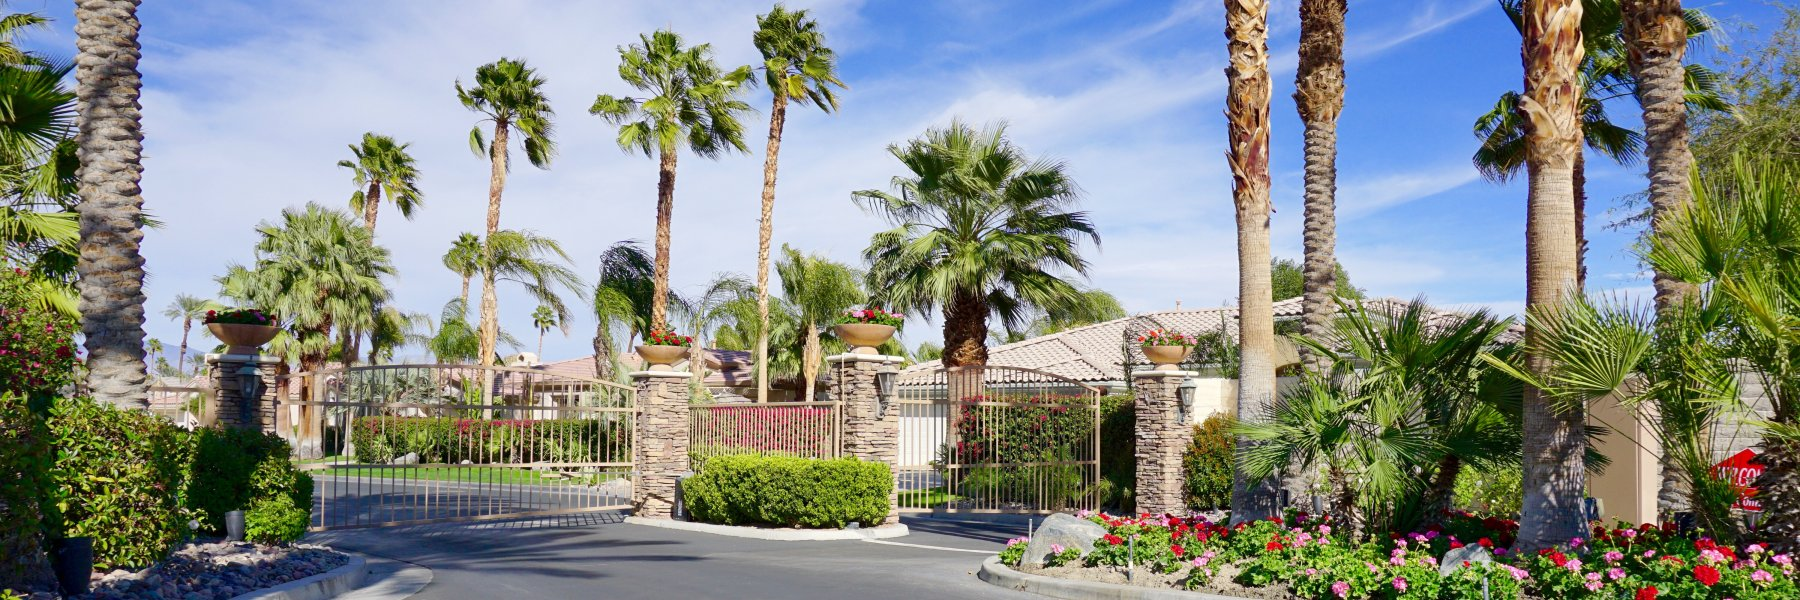 Colony Cove is a community of homes in Indian Wells California